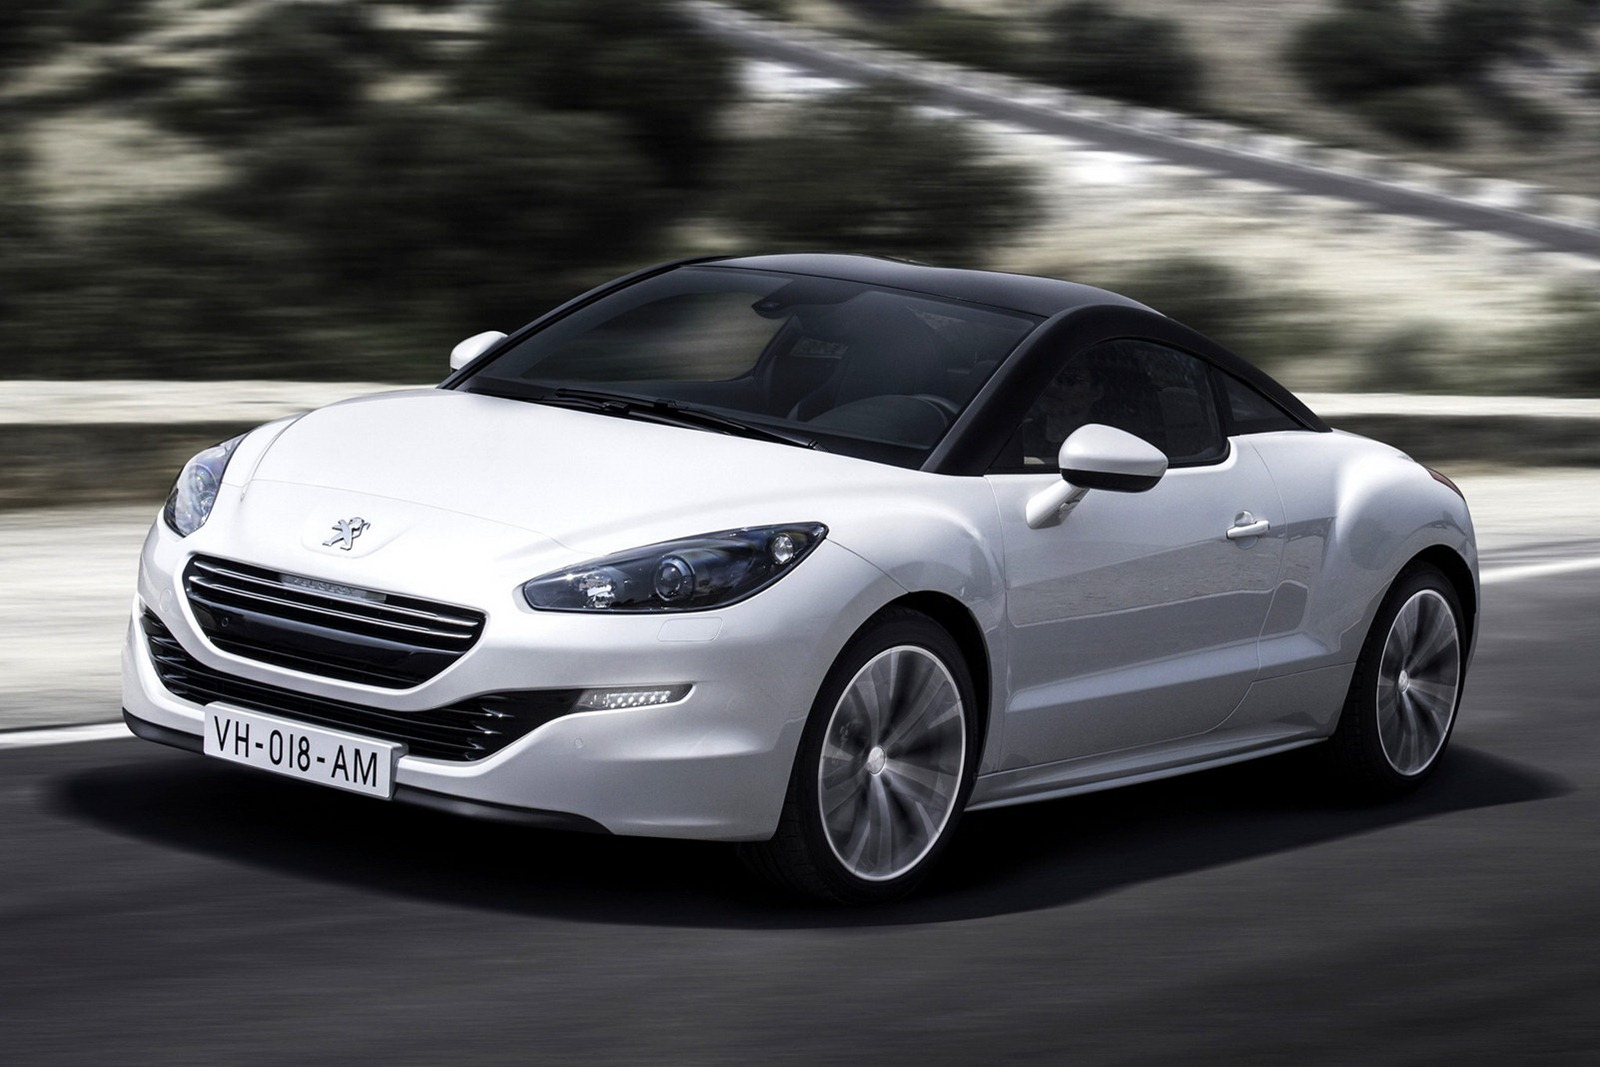 peugeot rcz related images start 0 weili automotive network. Black Bedroom Furniture Sets. Home Design Ideas